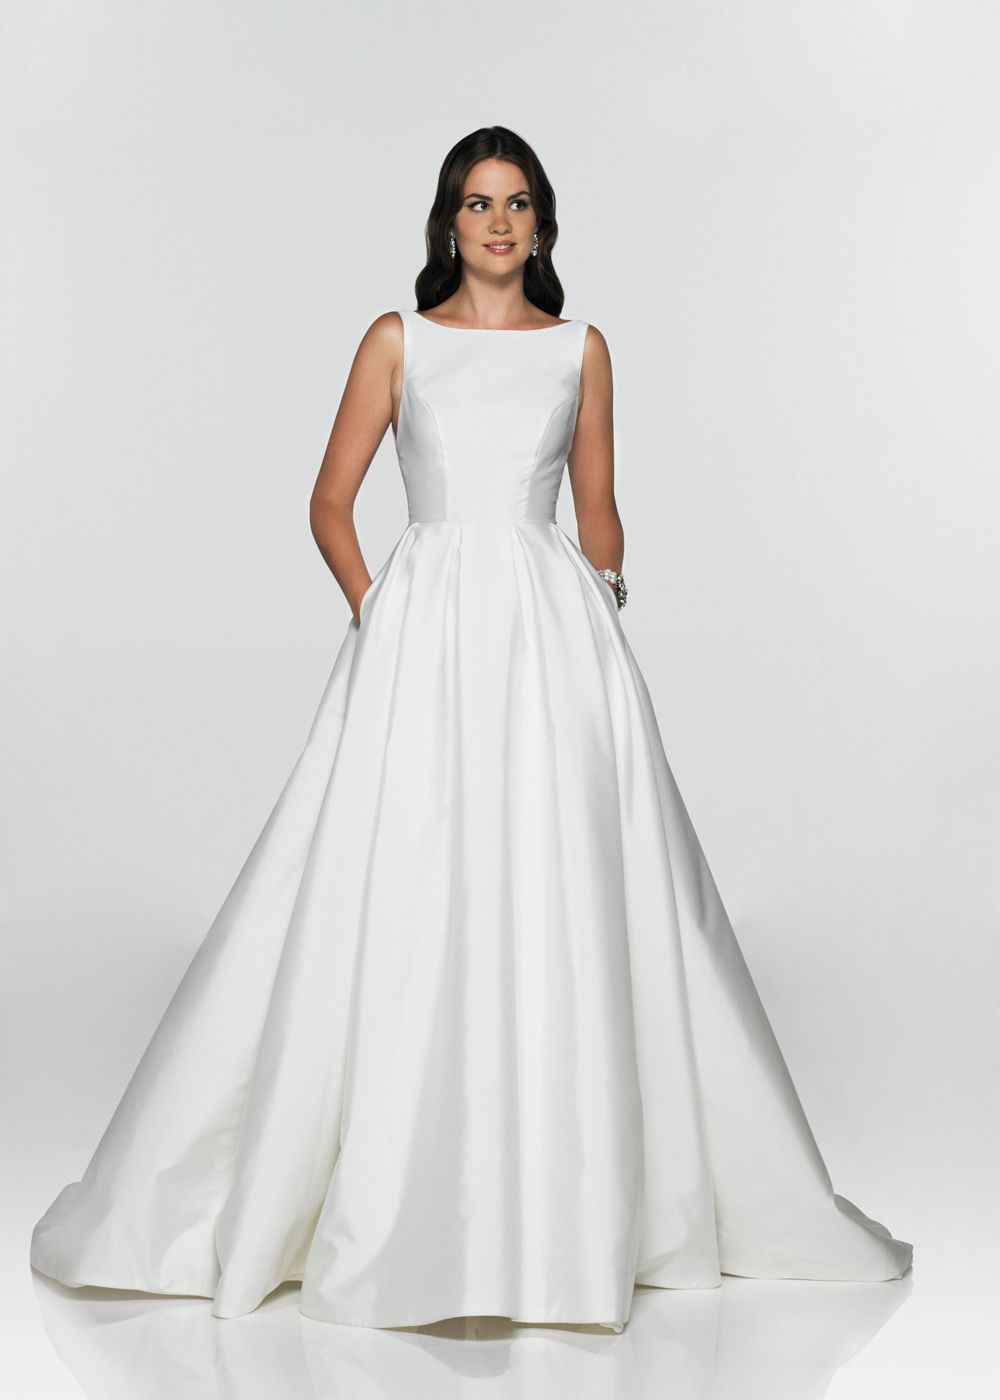 Zibeline boatneck gown with full pleated skirt and pockets ...